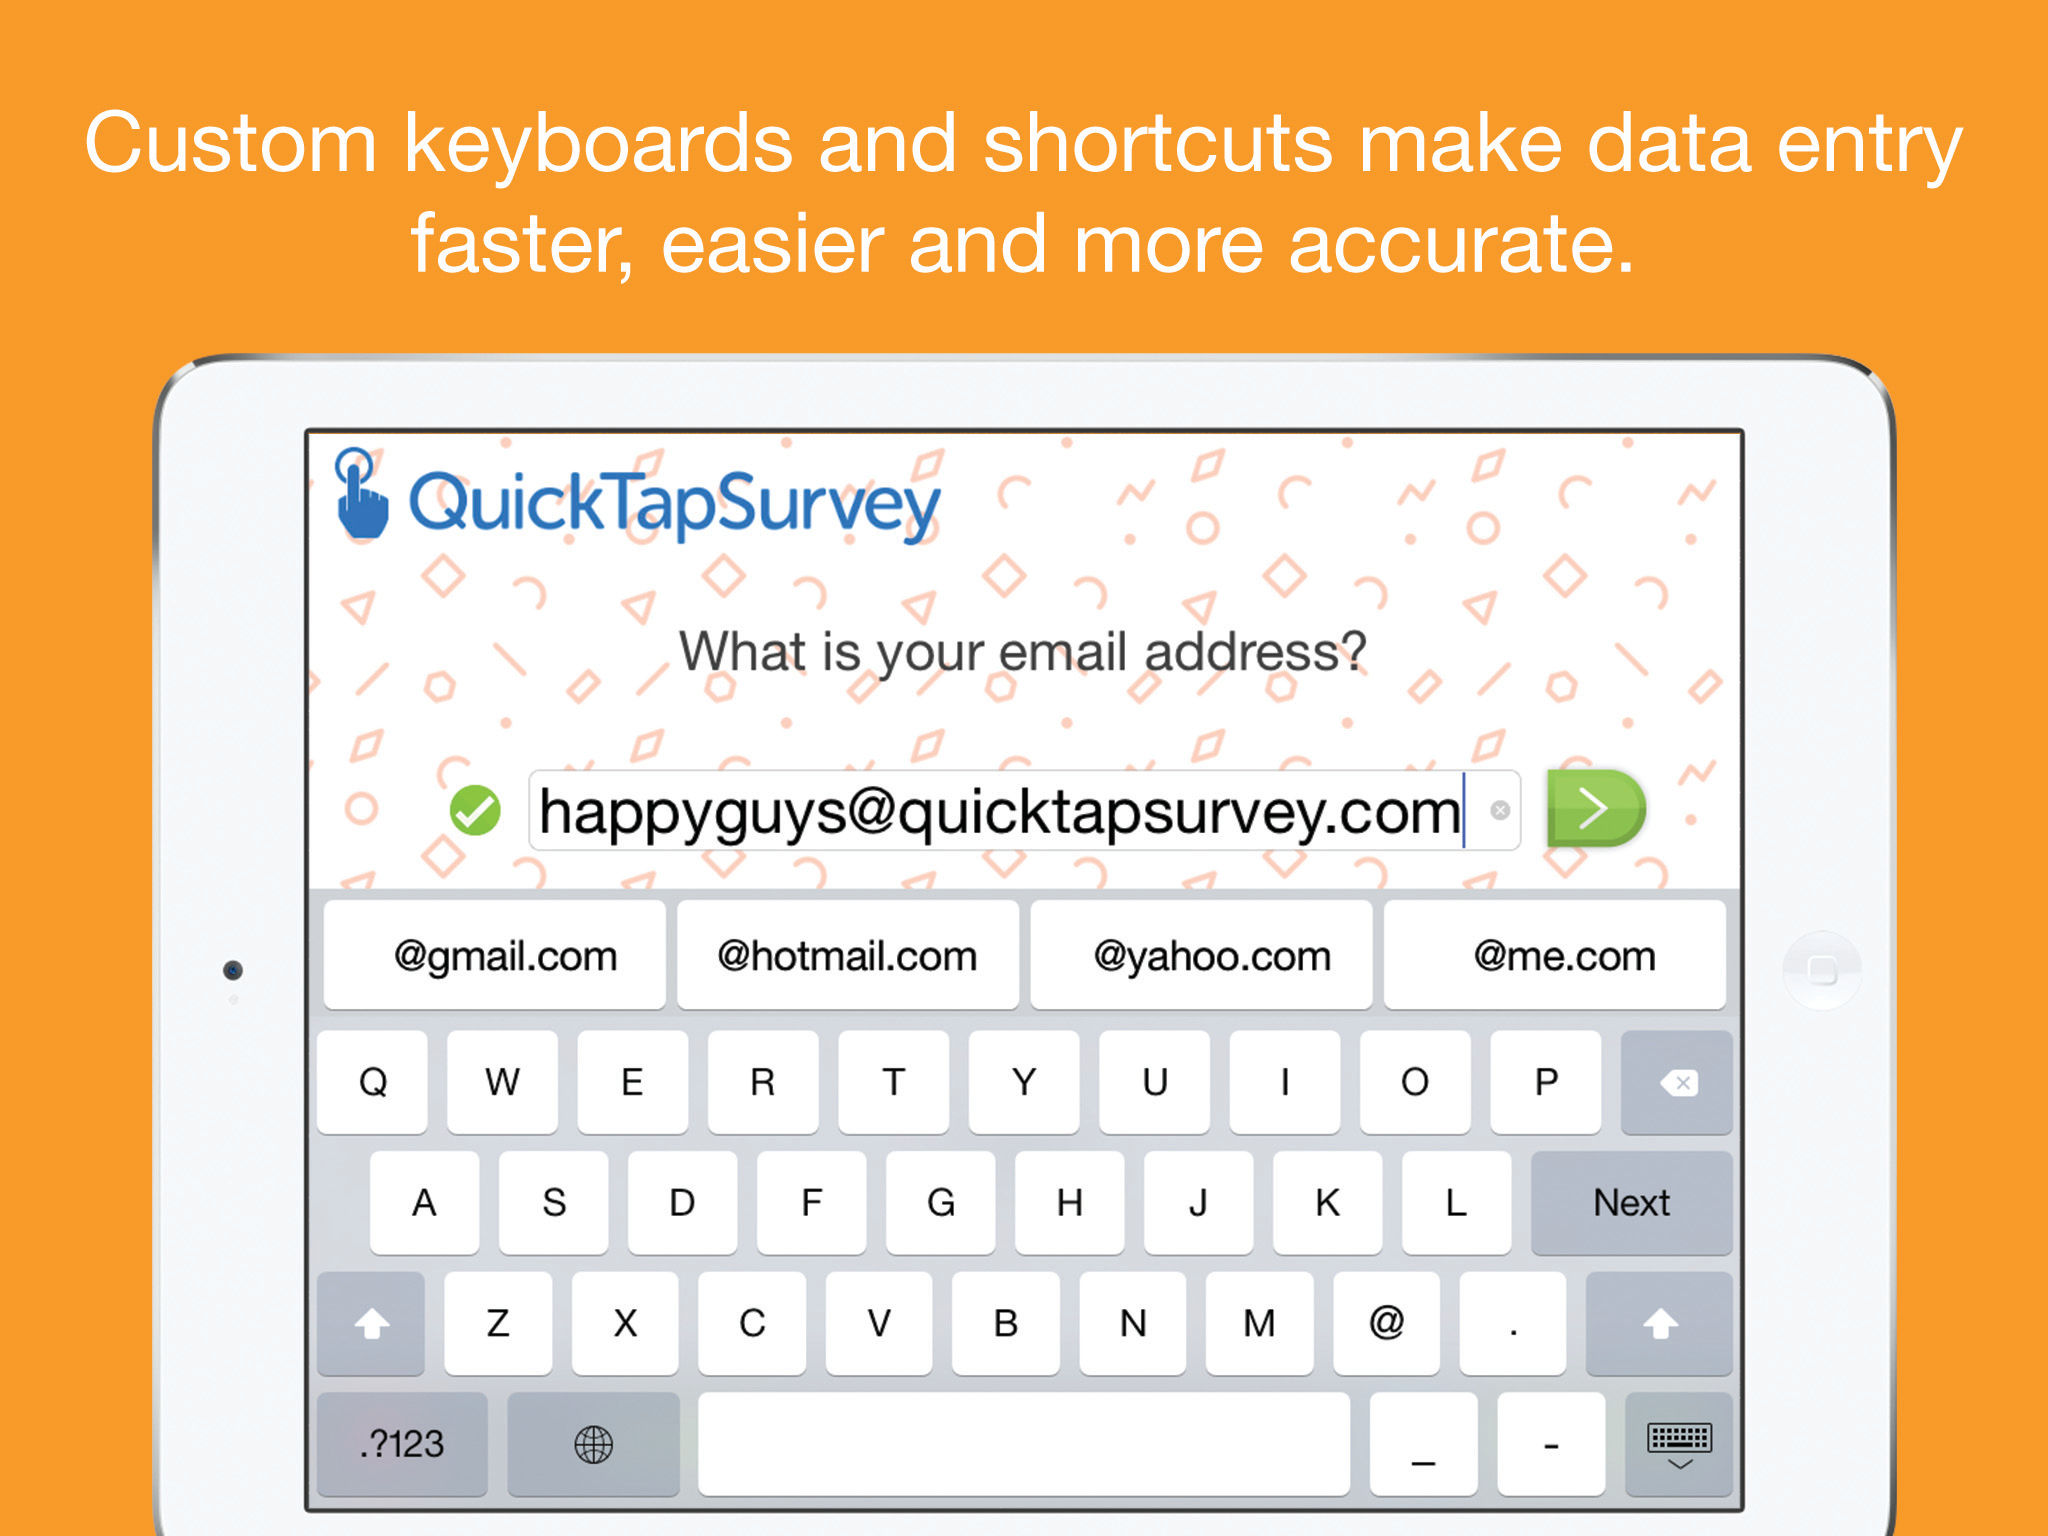 QuickTapSurvey Demo - Fast data entry